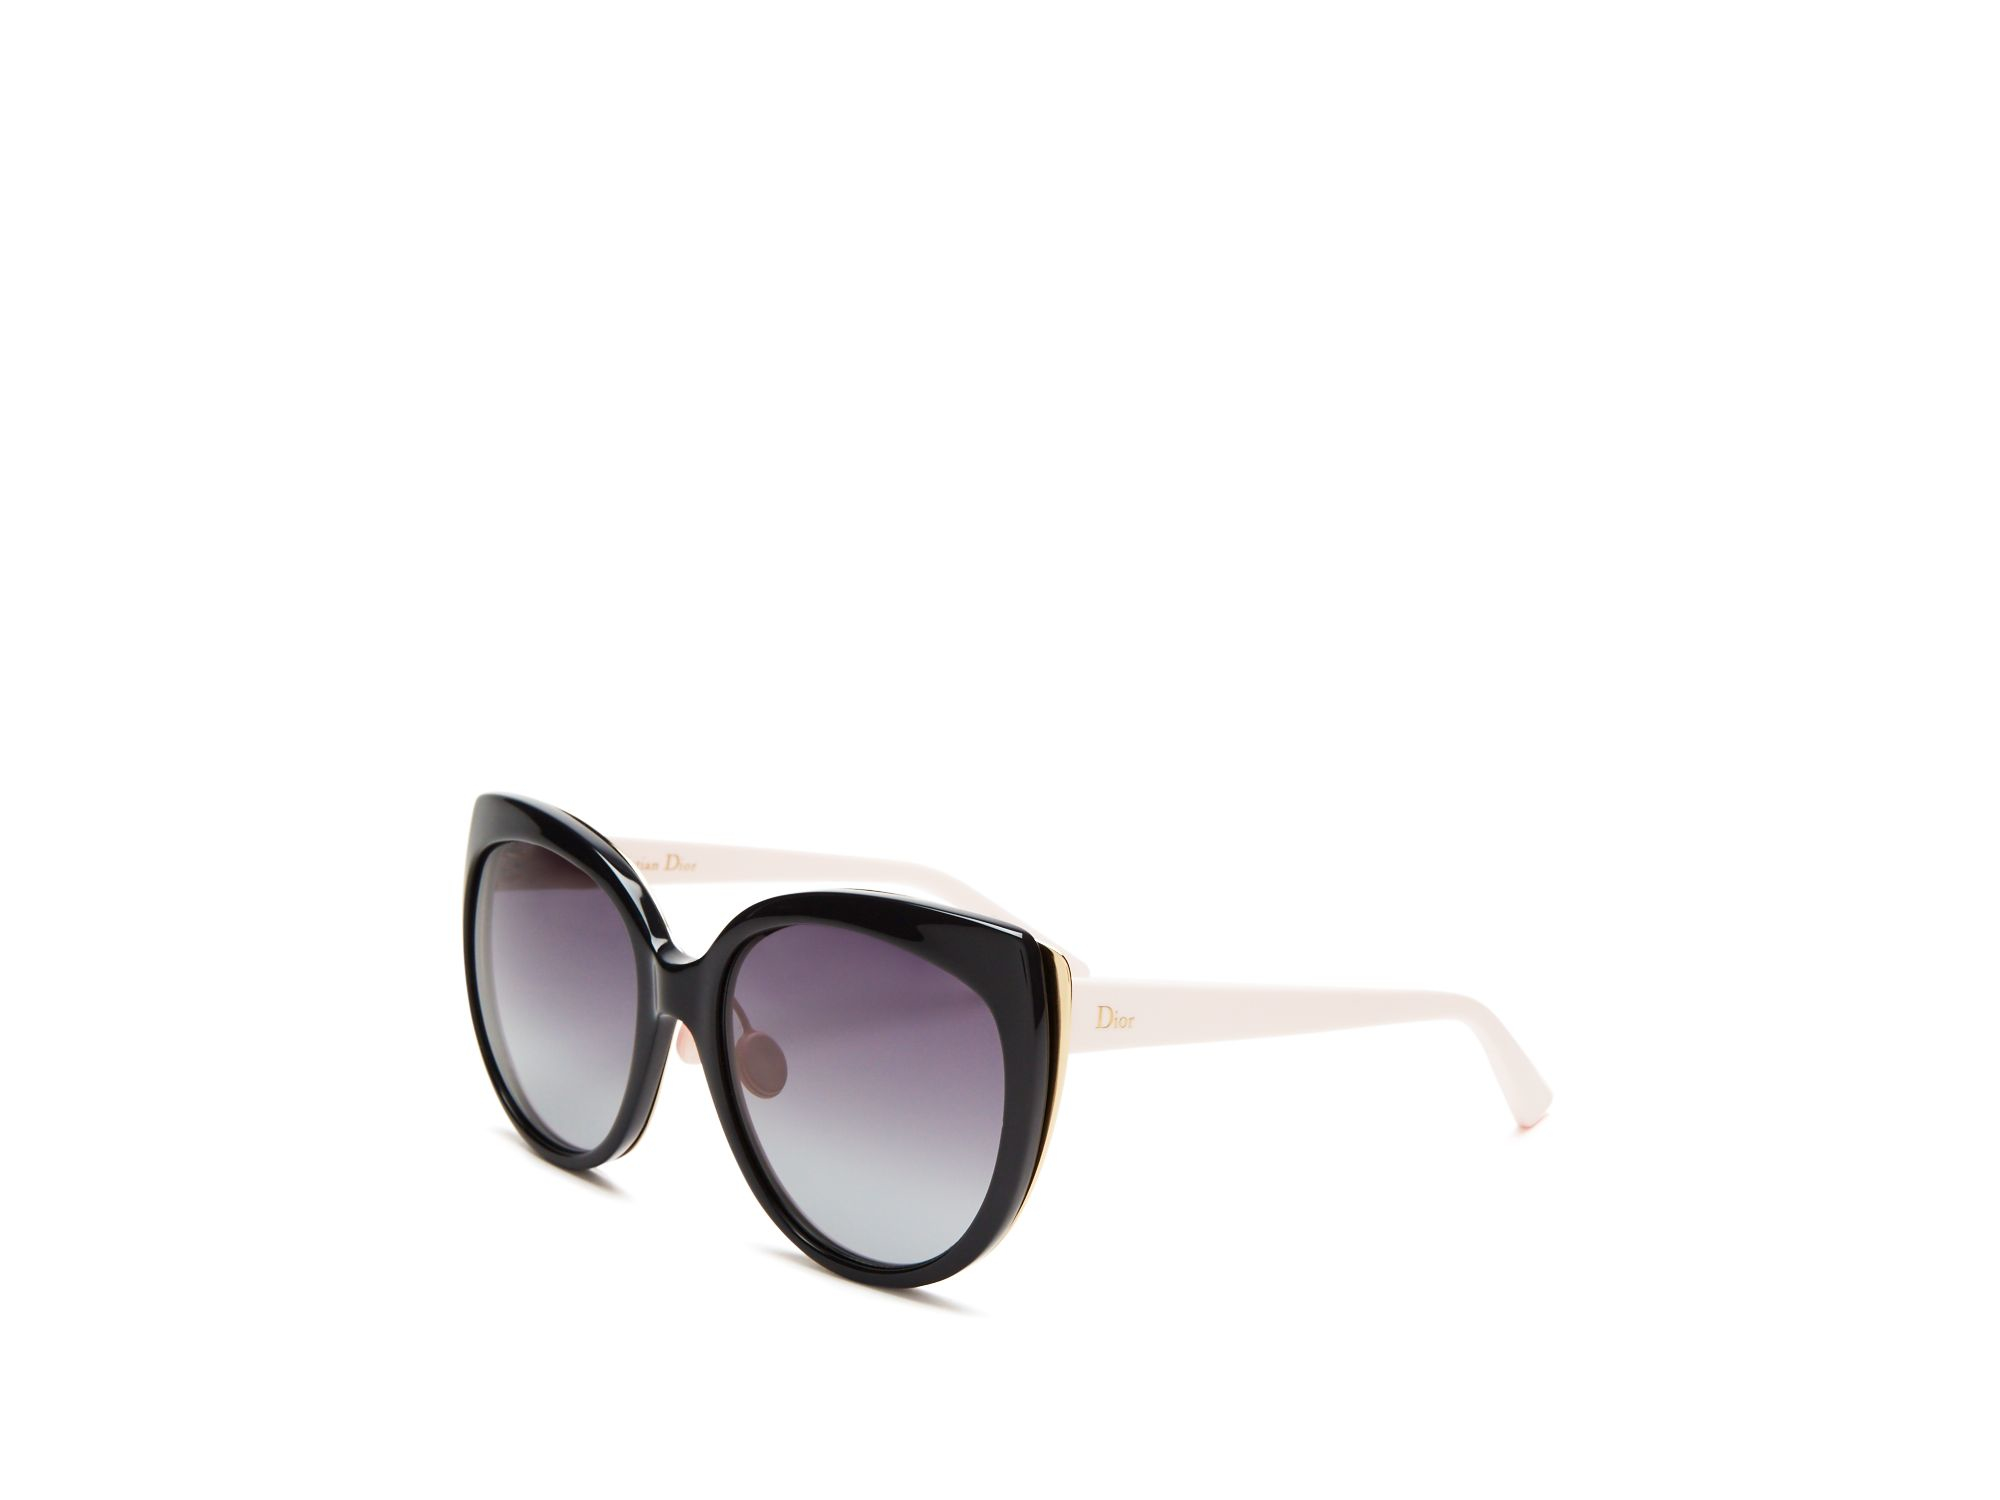 438bab8c65f05 Dior Cat Eye Sunglasses With Logo On Temple